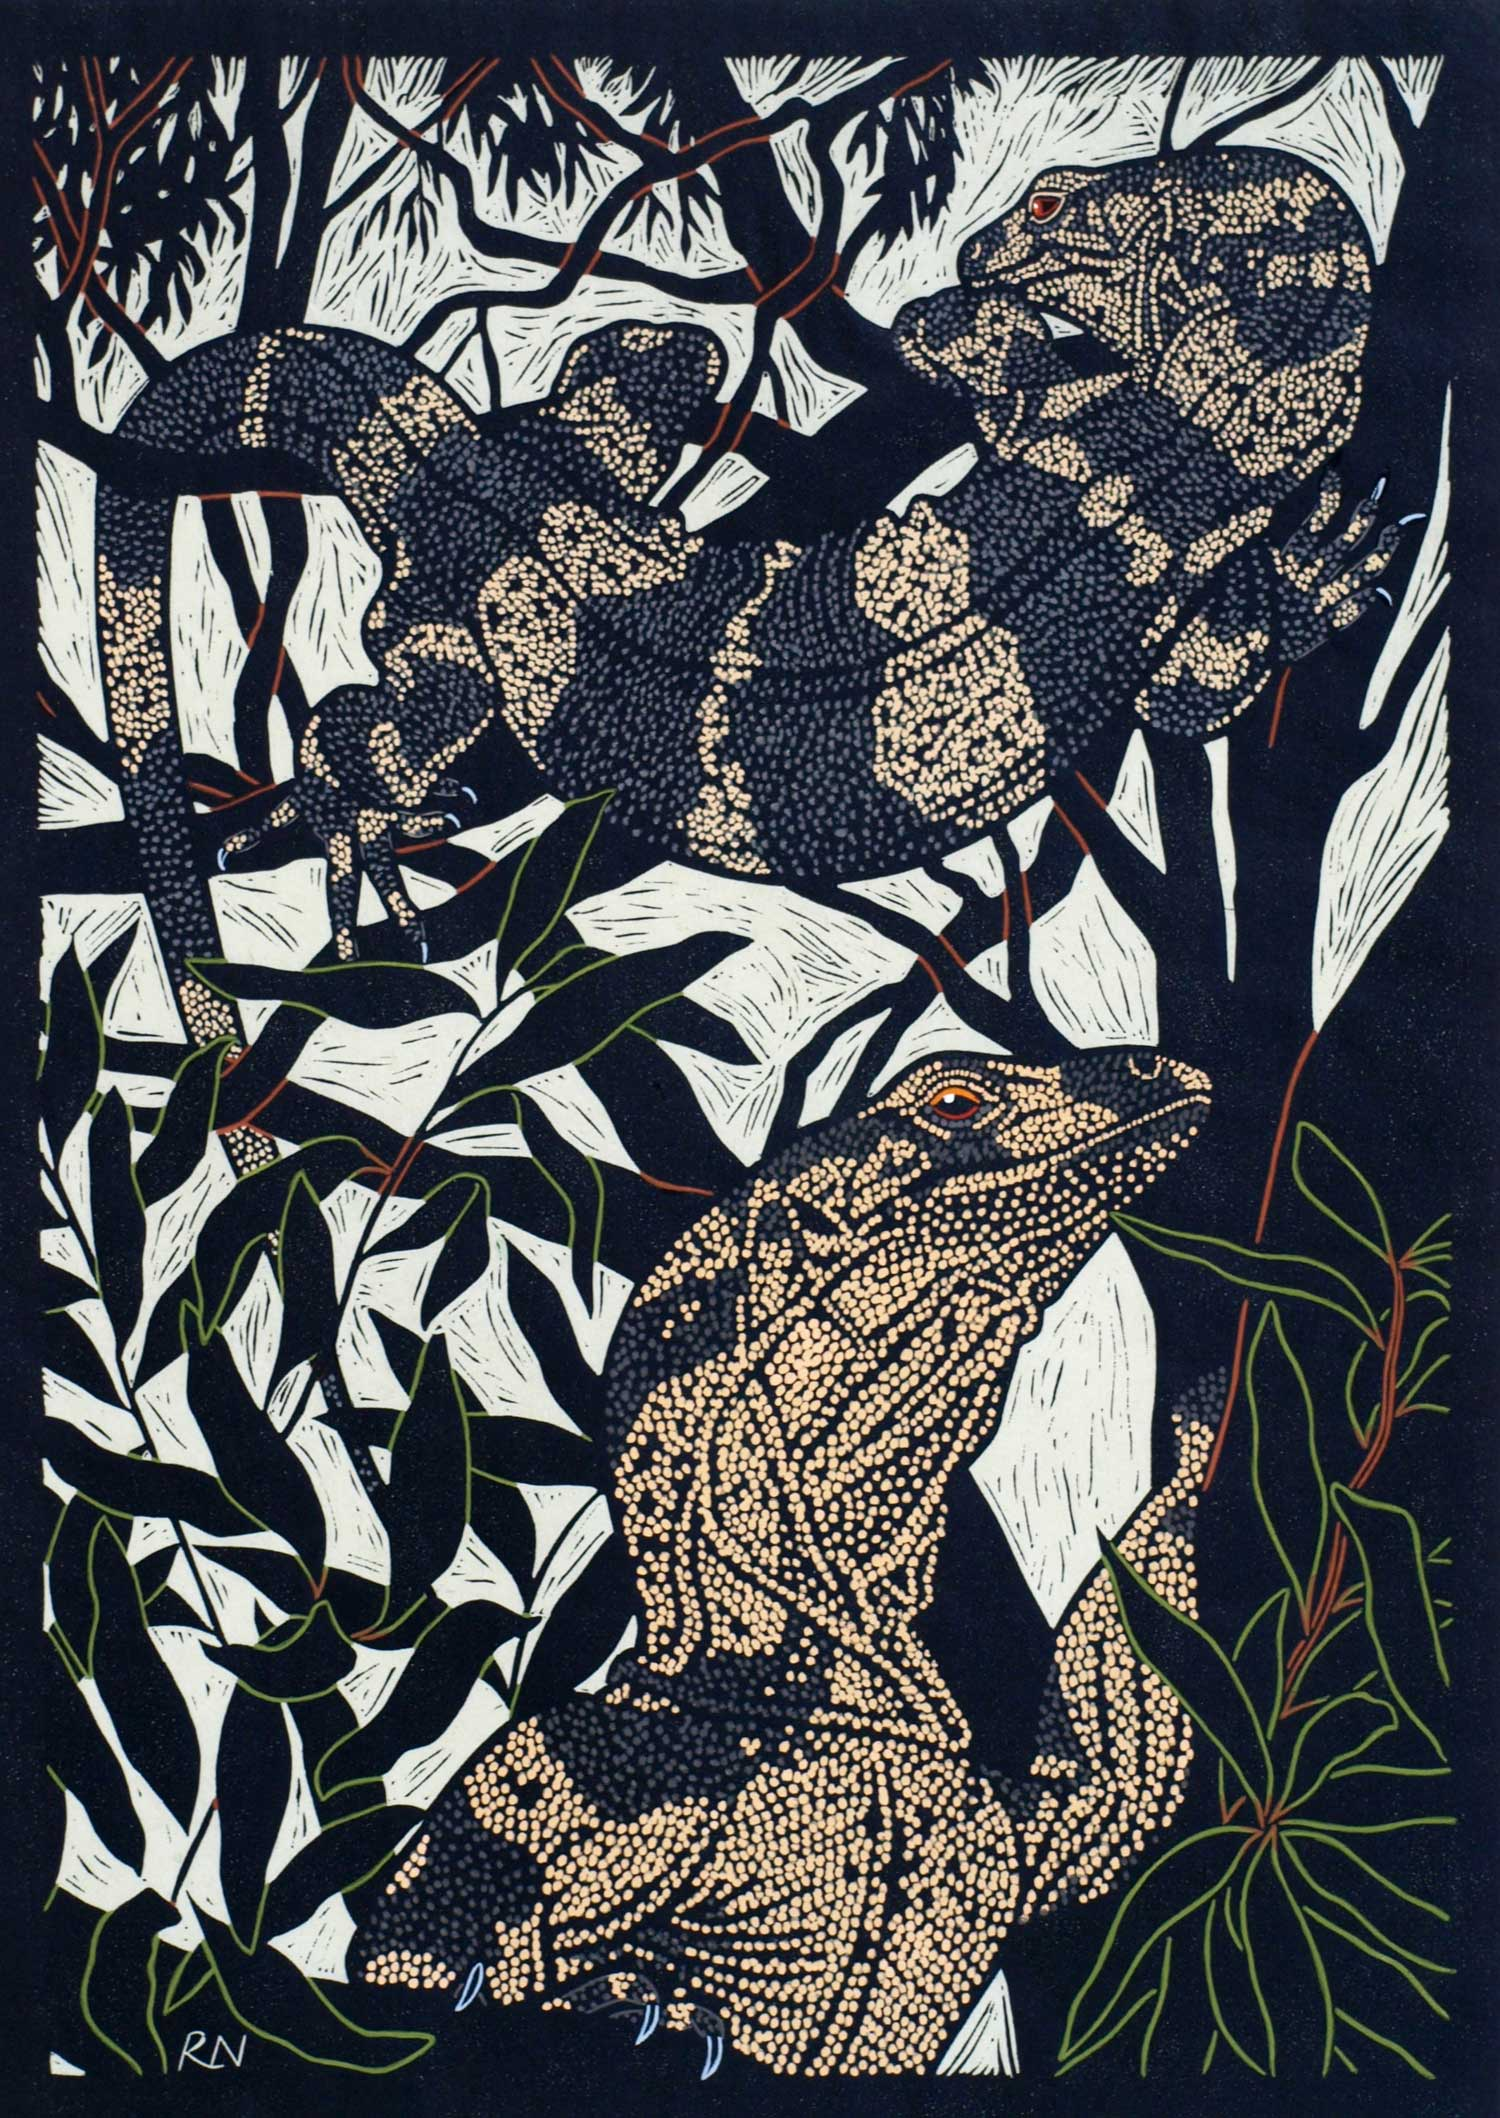 LACE MONITOR  49.5 X 35 CM EDITION OF 50  HAND COLOURED LINOCUT ON HANDMADE JAPANESE PAPER  $1,100